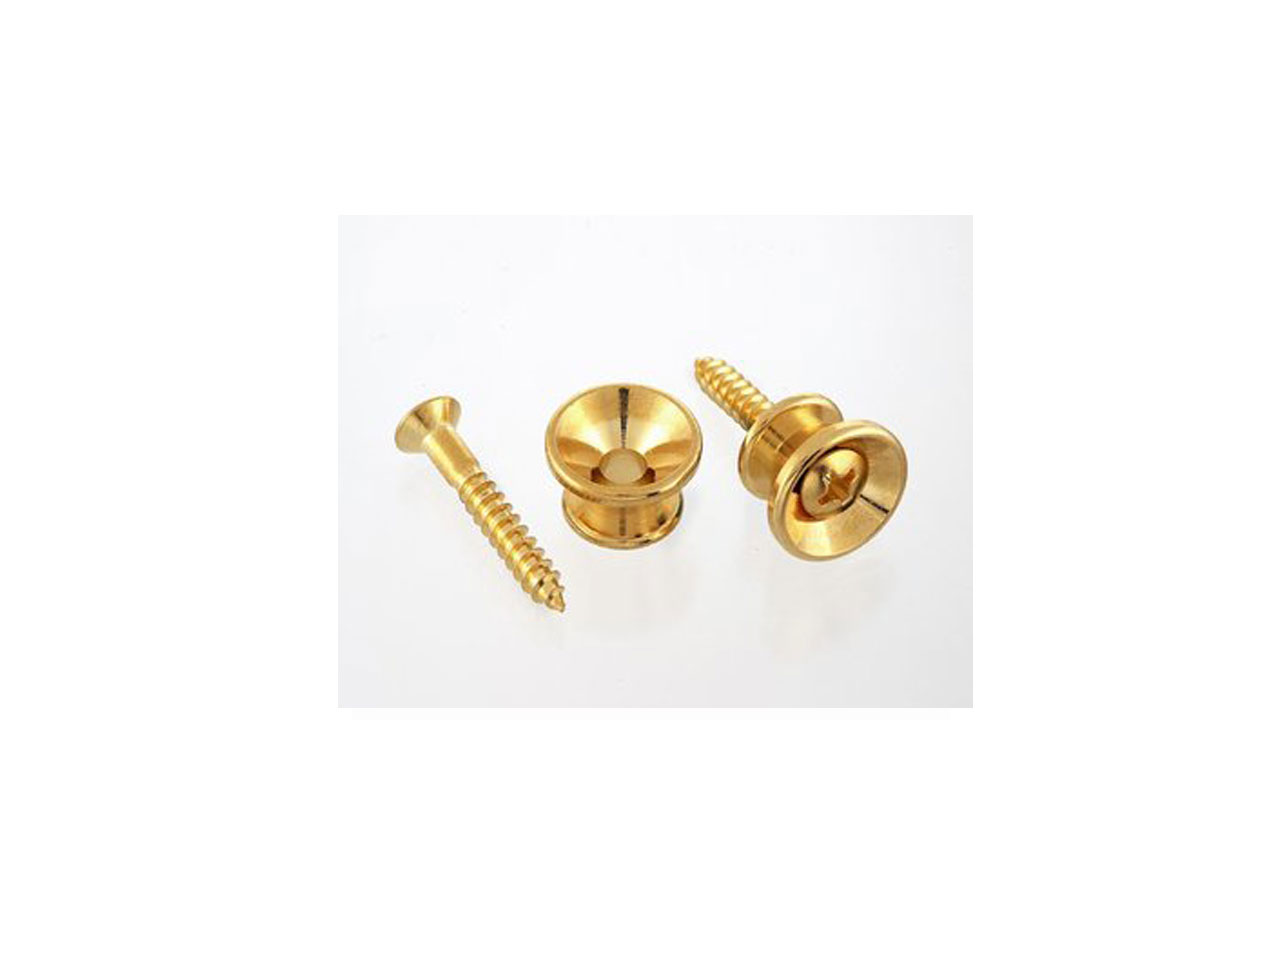 Allparts / AP-0670-002 Gold Strap Buttons